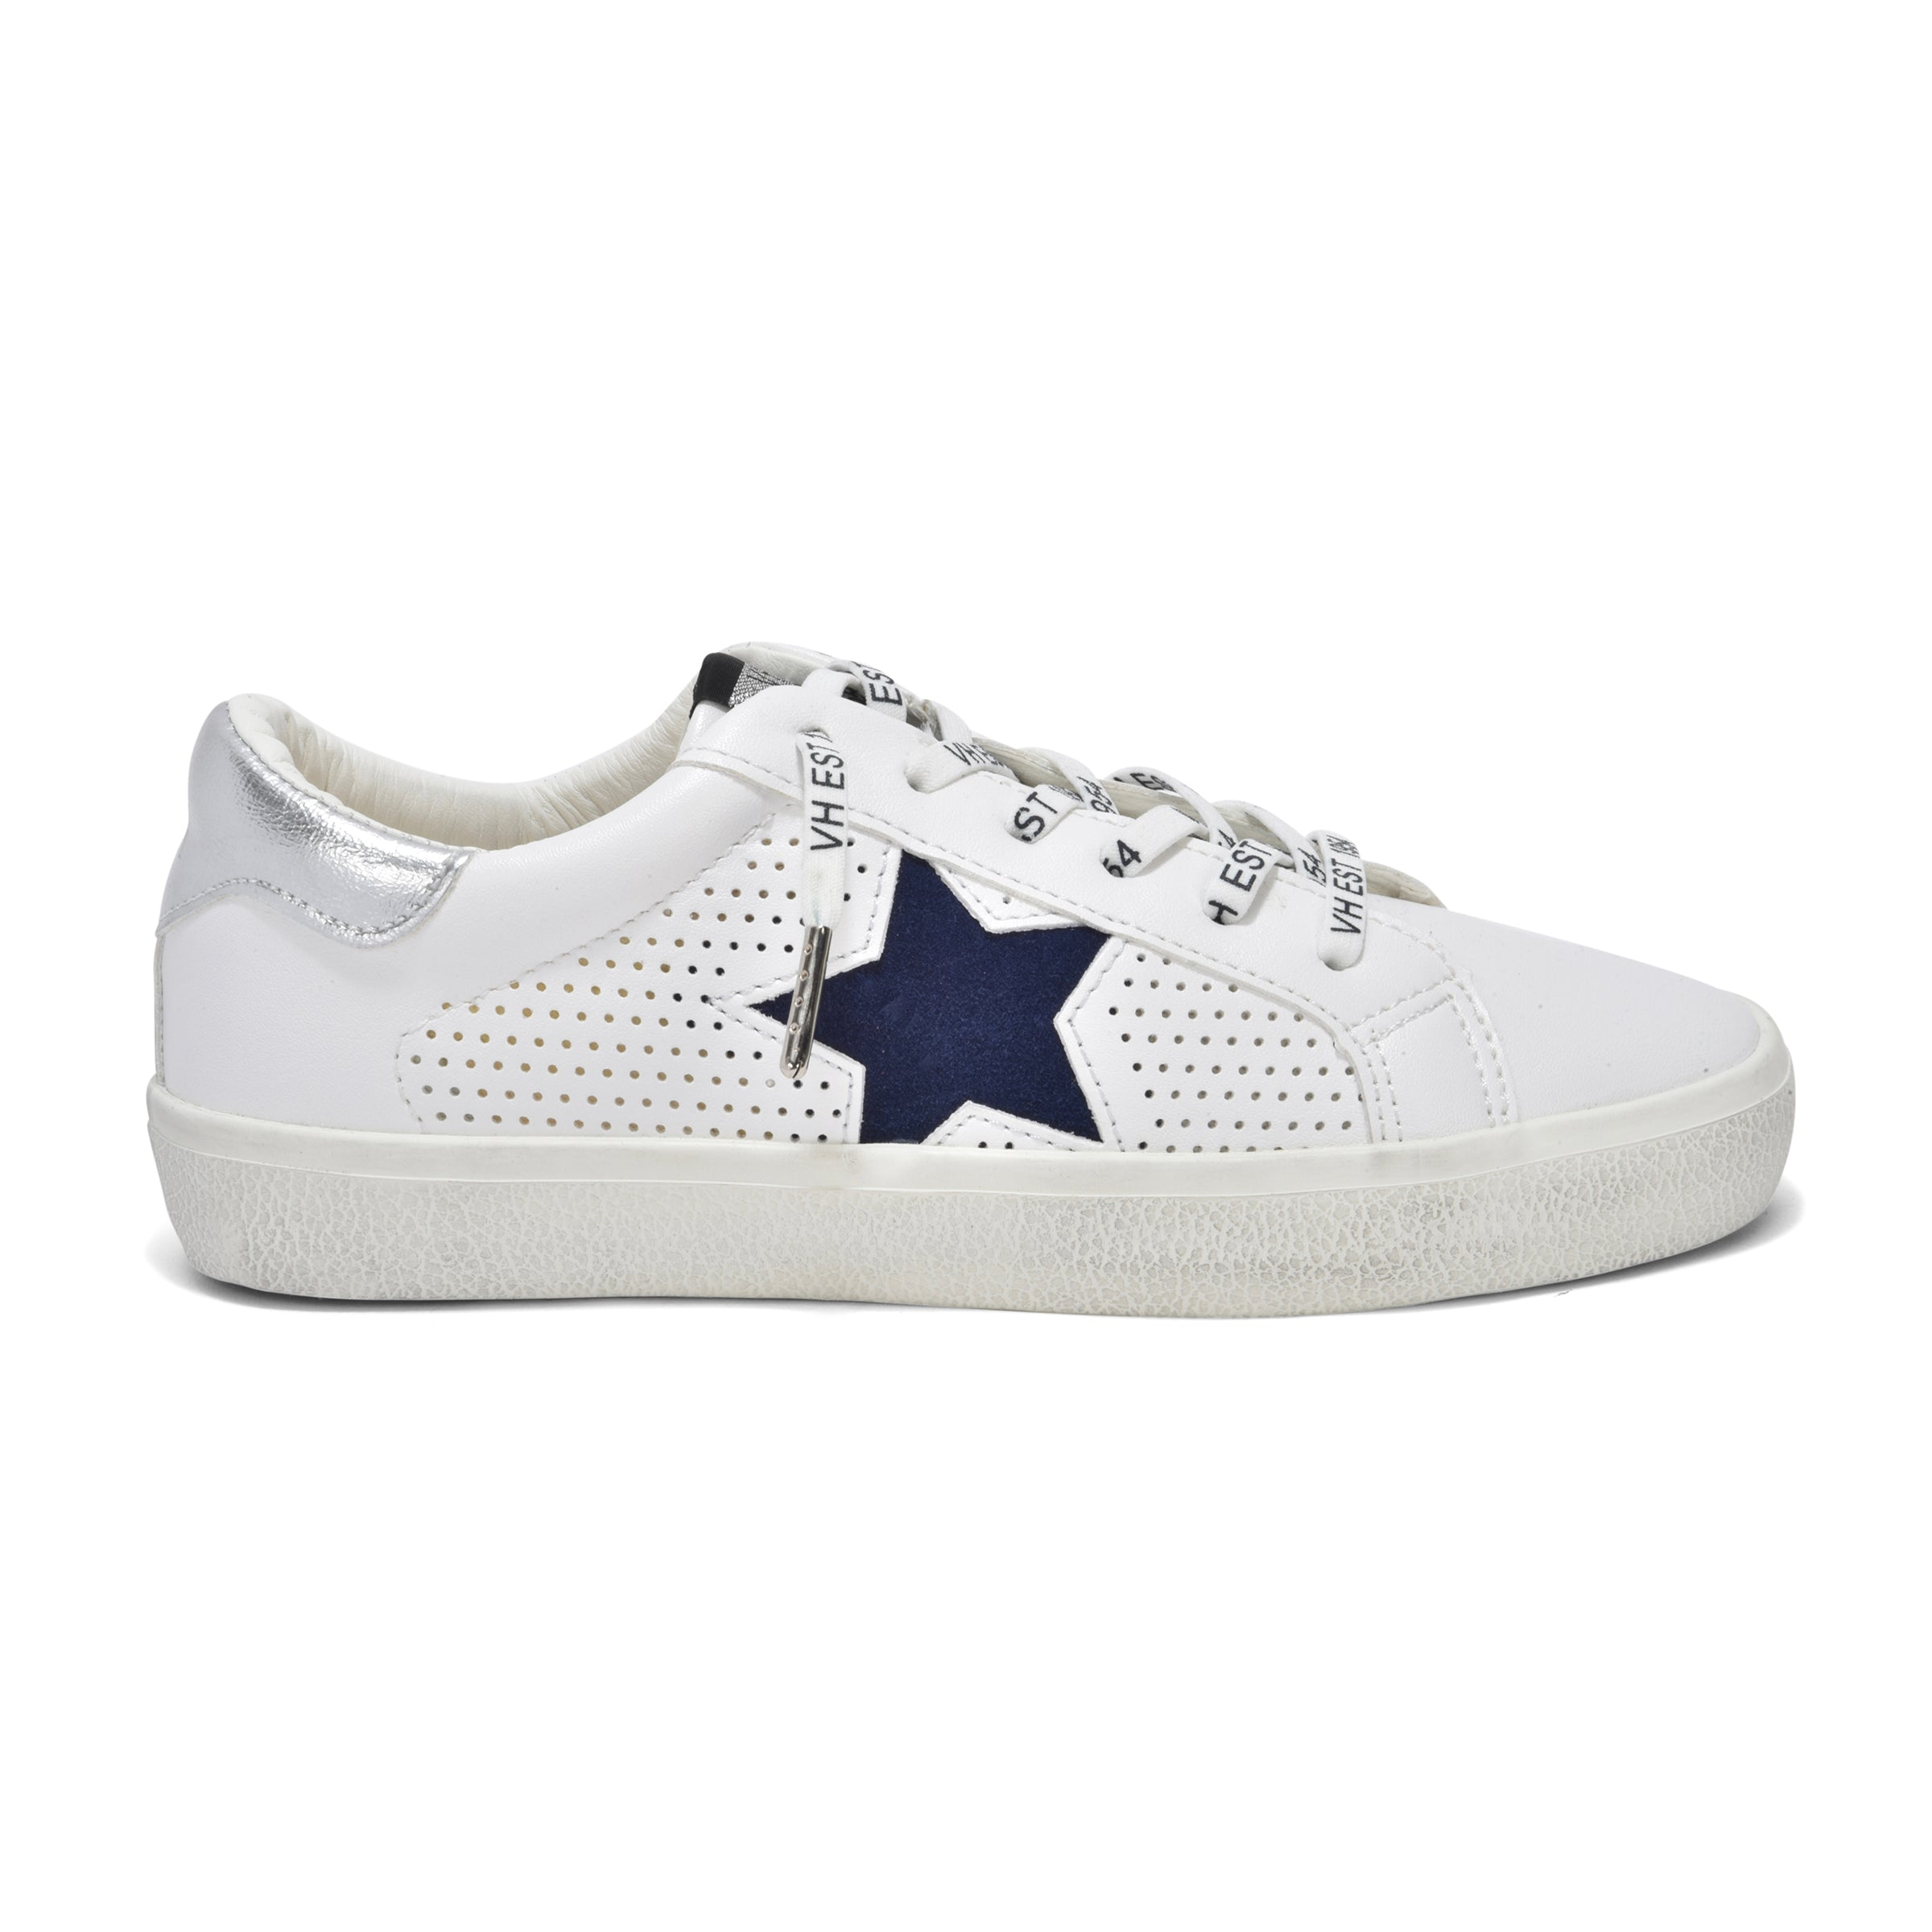 The Star Perforated Lace Sneaker in White Navy